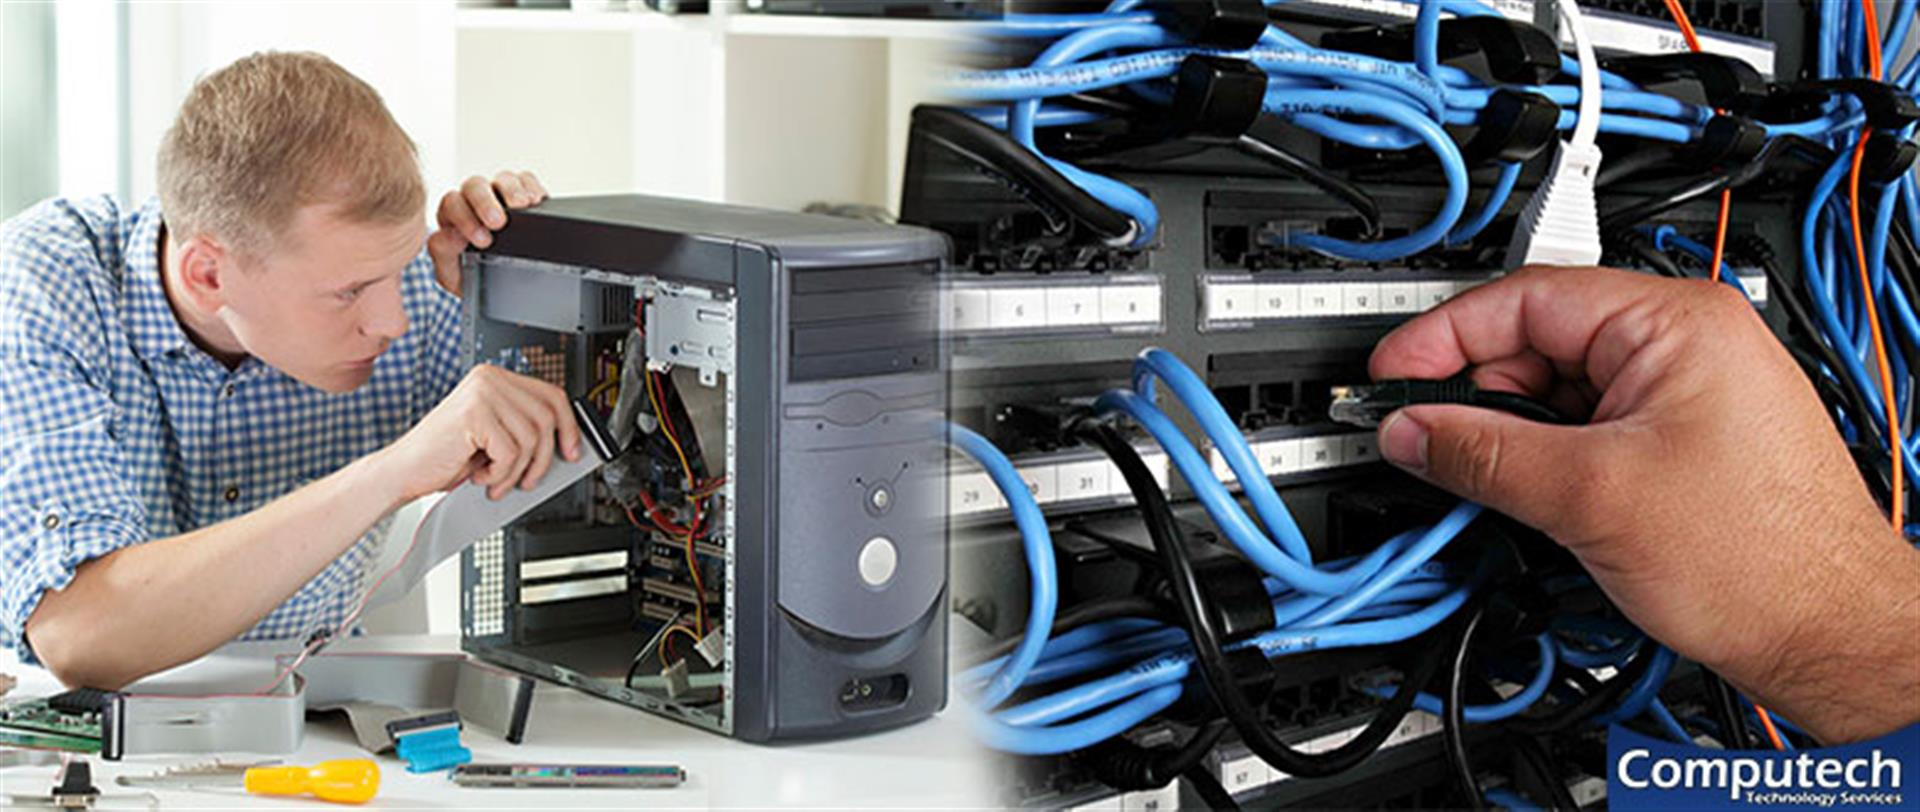 Braselton Georgia On Site PC & Printer Repairs, Networks, Voice & Data Cabling Contractors